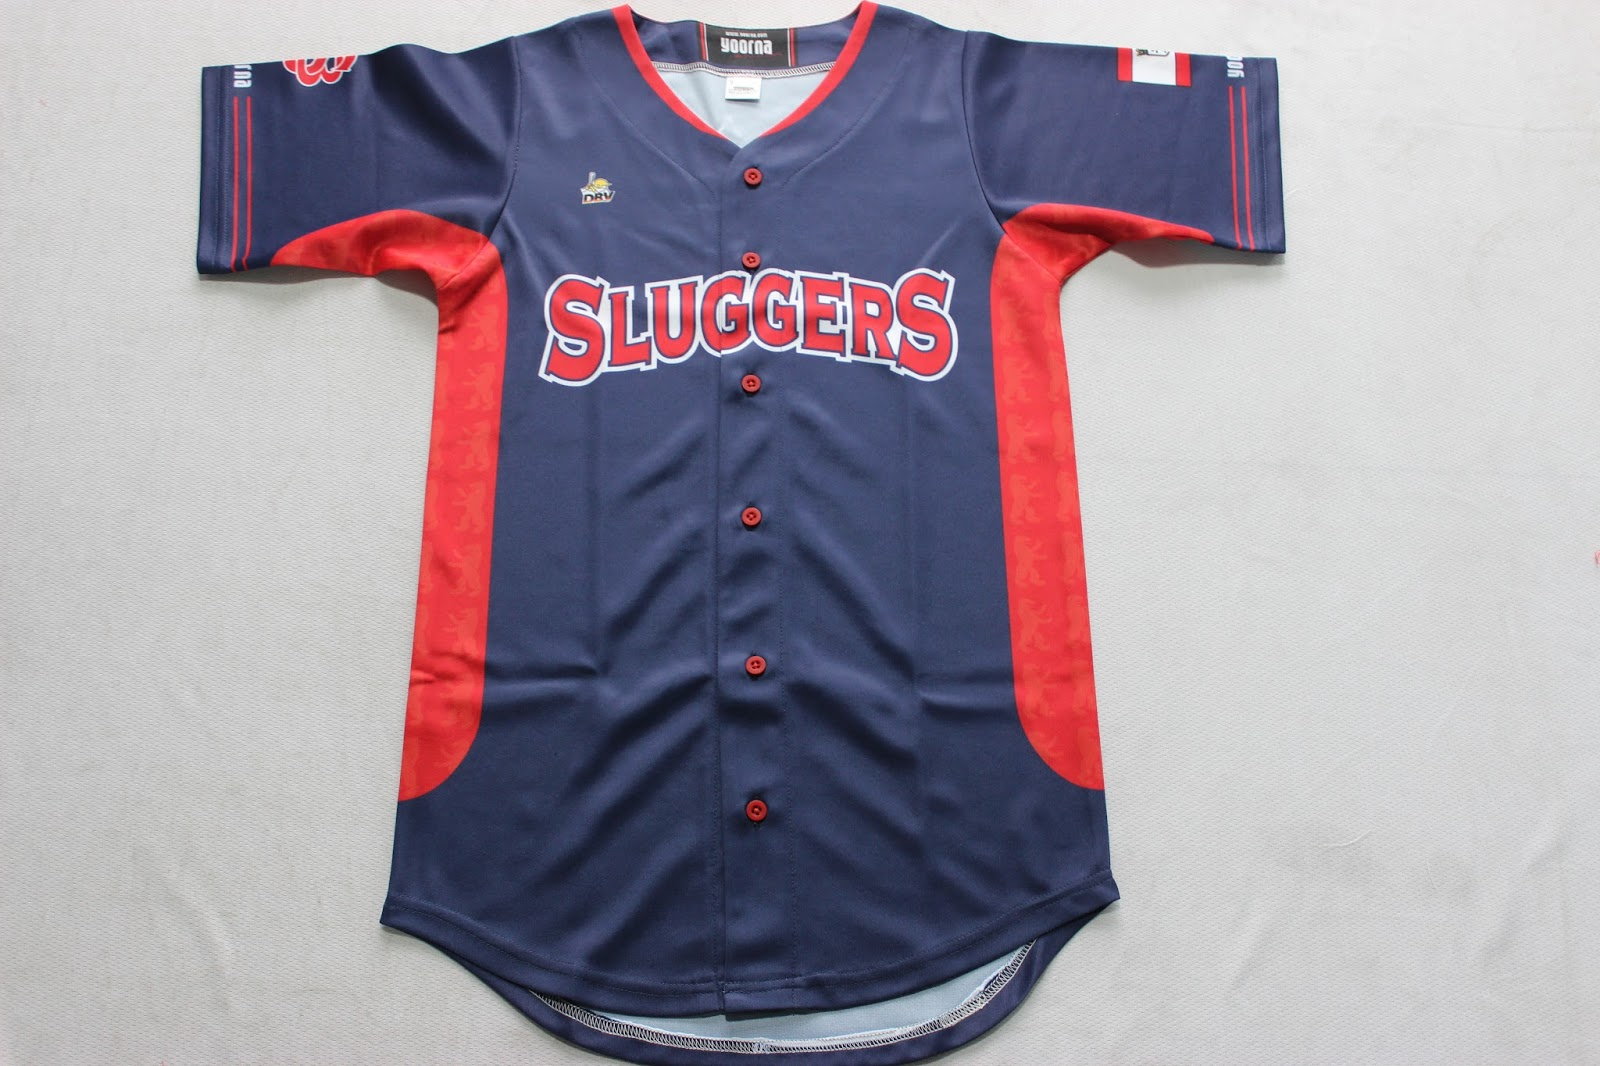 a40f4126e custom sublimated baseball shirts with your logos and designs